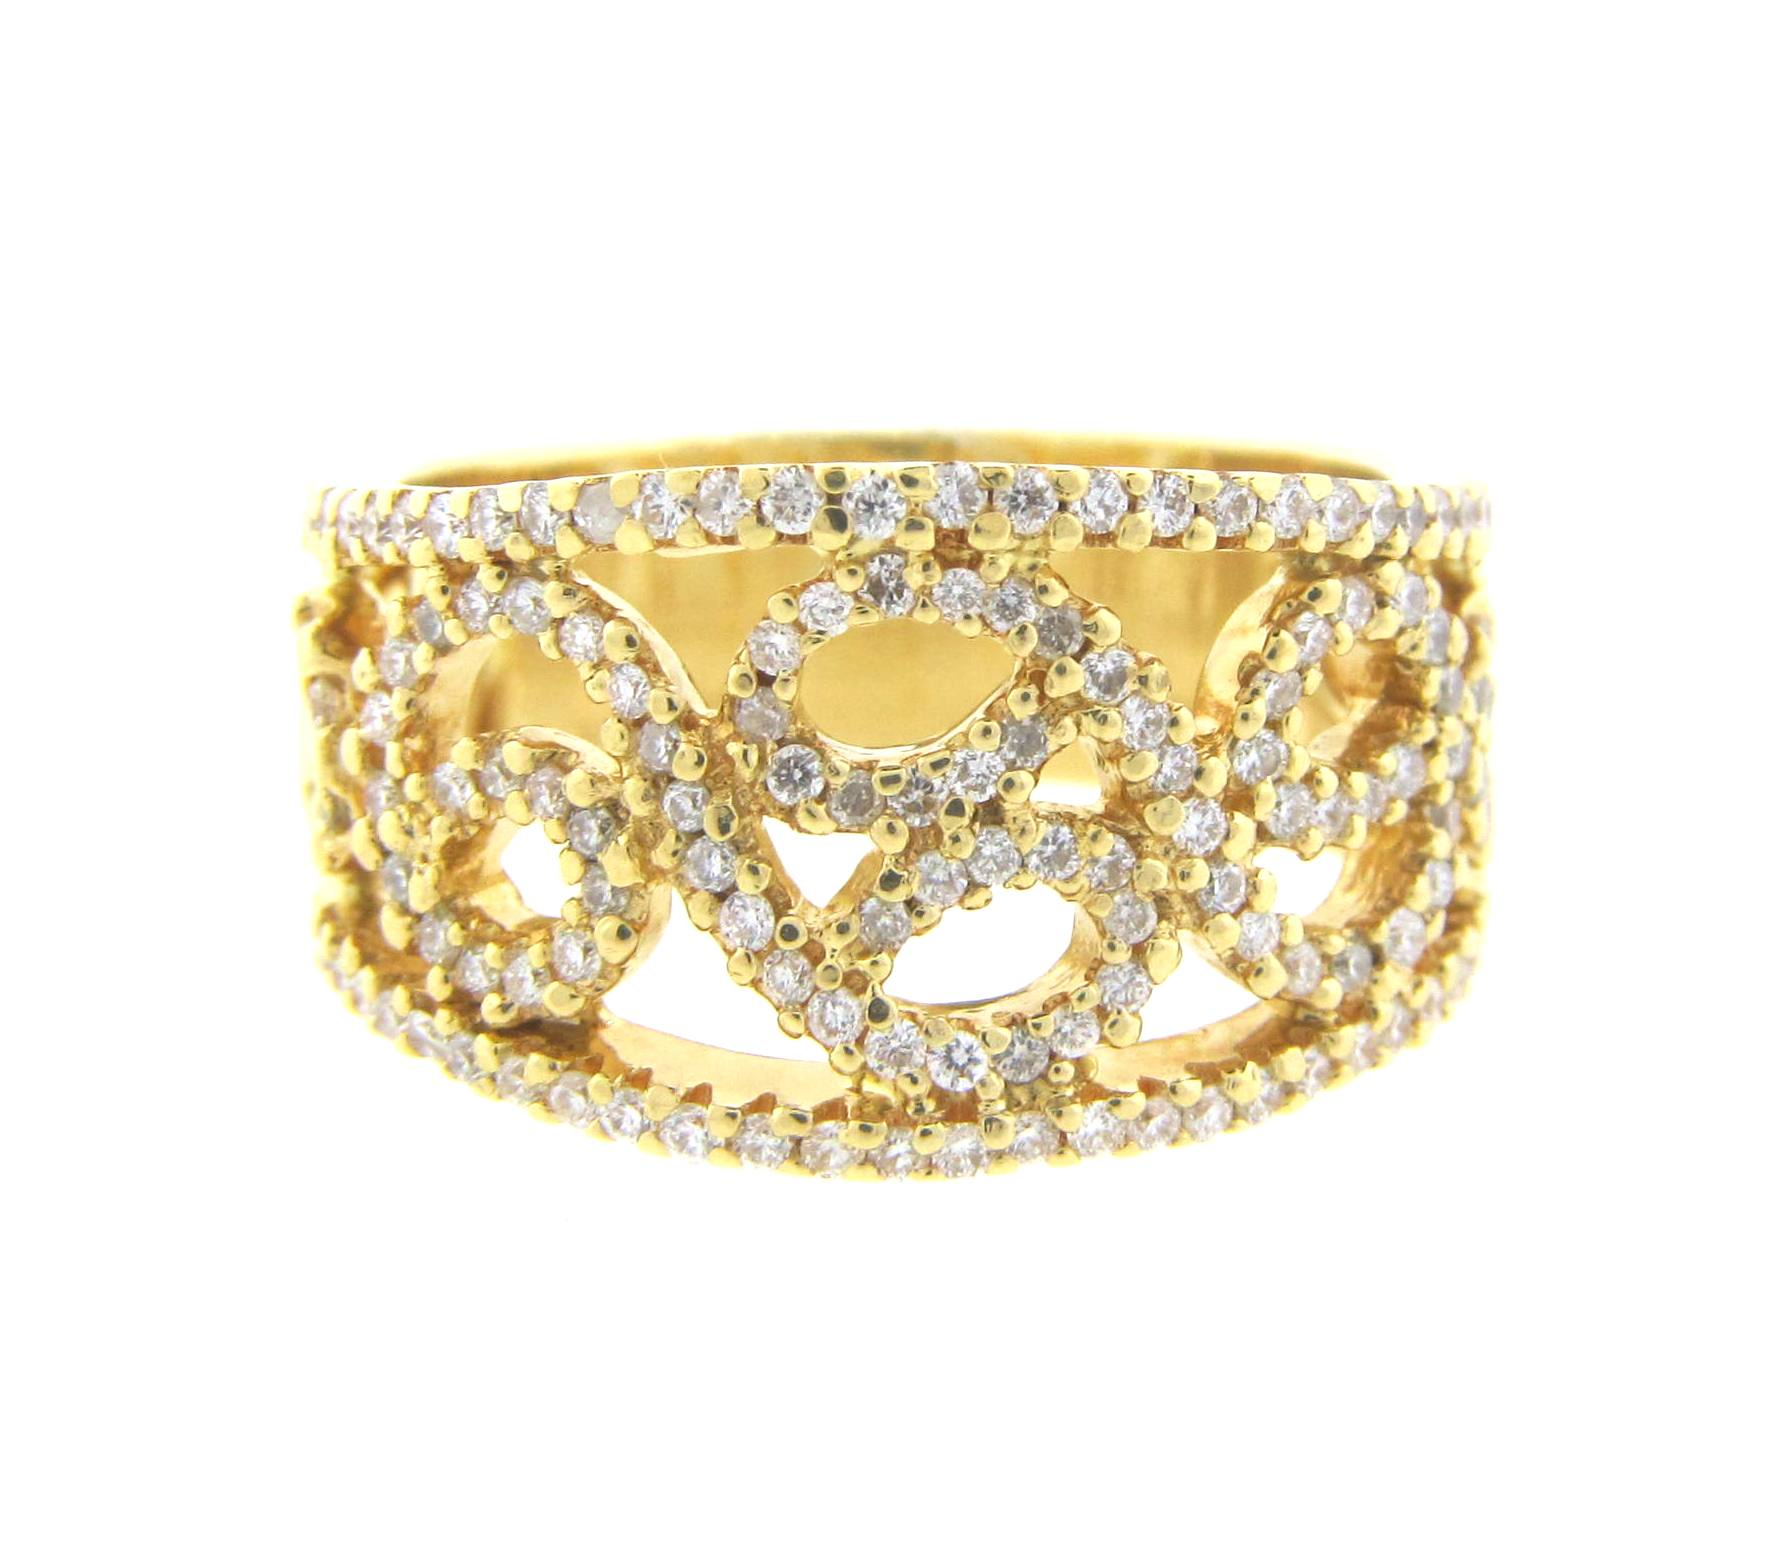 Pave swirl design band diamond exchange usa for Jewelry by design rockville md